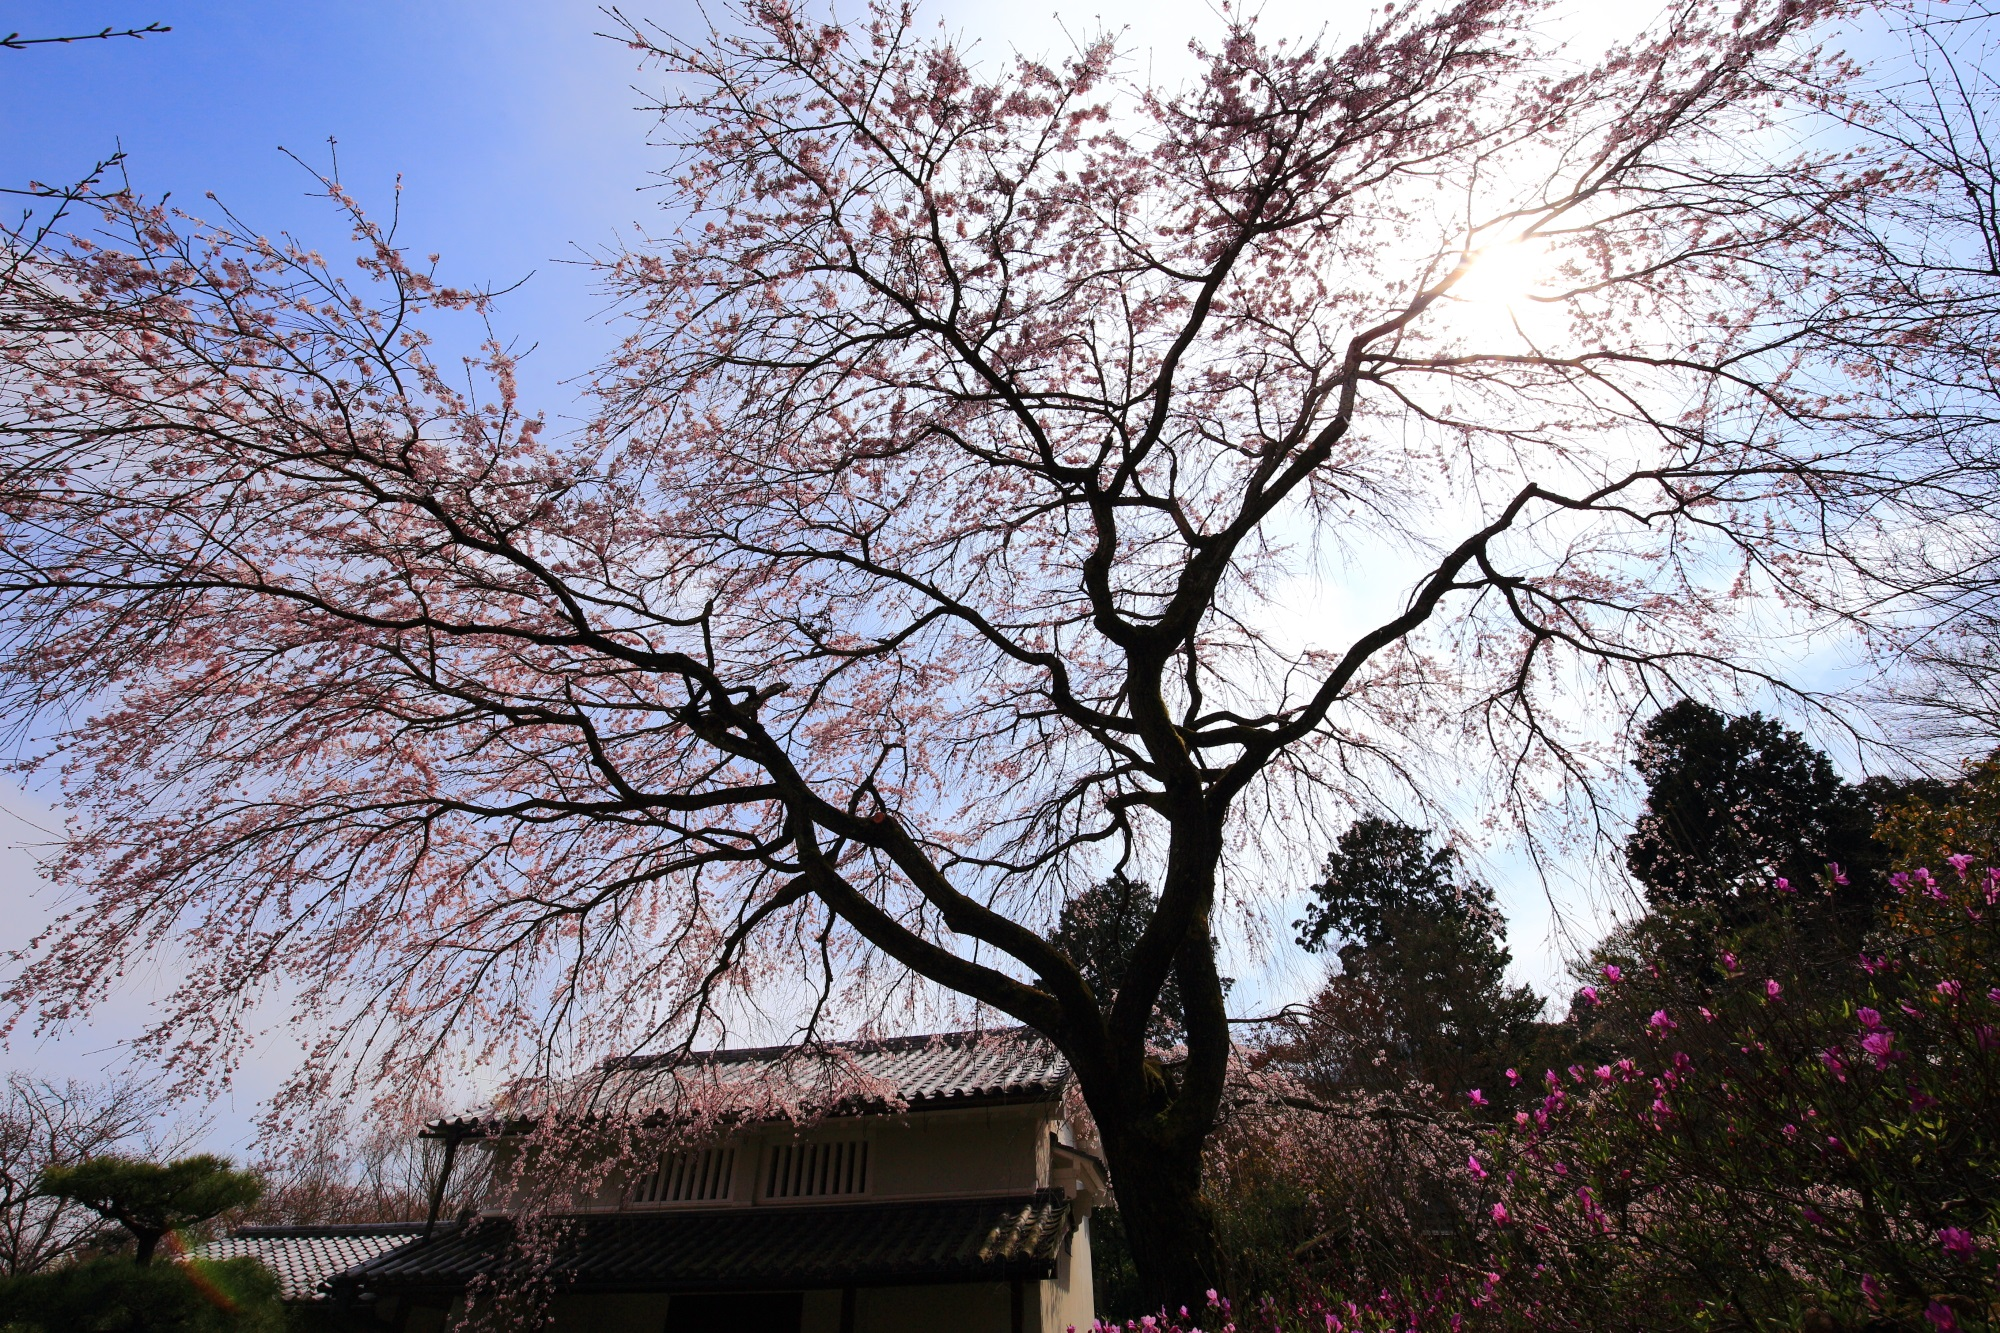 Kyoto Jyojakkoji-Temple cherry blossoms